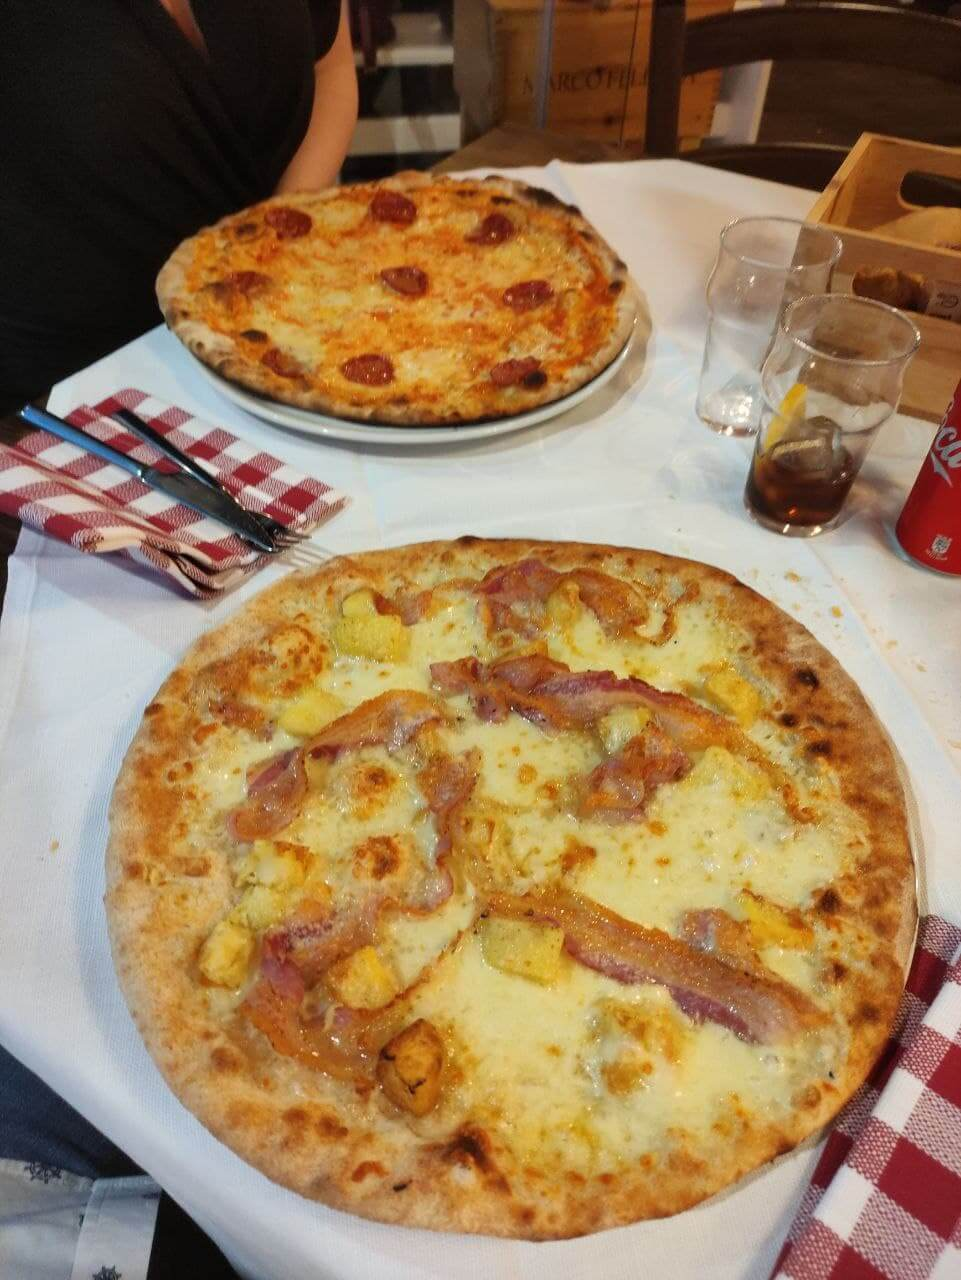 Two Pizzas one with pepperoni/salame and another custom one